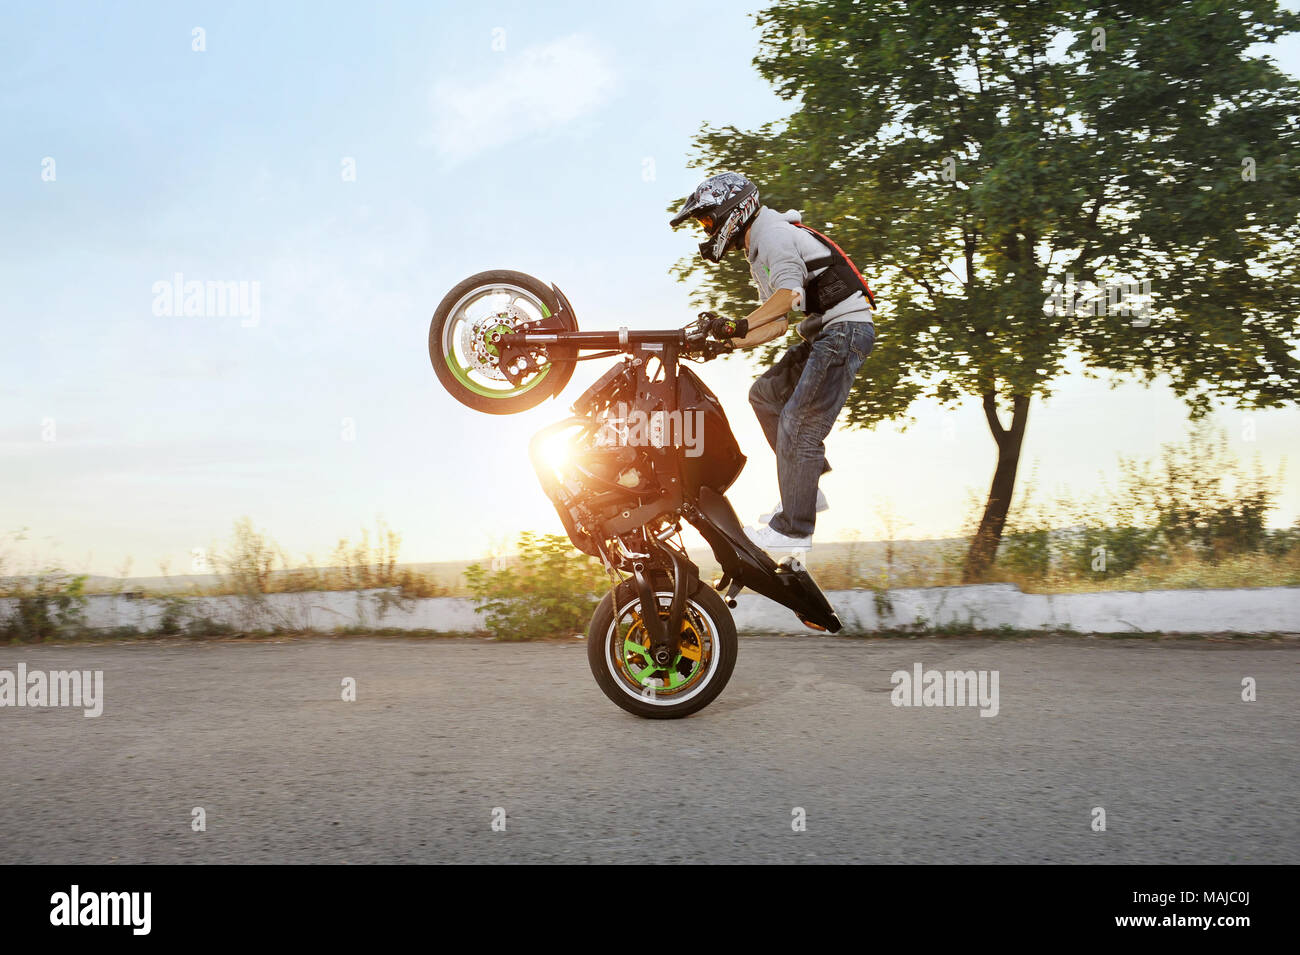 Ivano-Frankivsk, Ukraine - 28 August 2015 : Extreme stunt driver is jumping on his sport motorcycle while riding in extreme way. Summer sunny evening. Adrenaline riding. - Stock Image